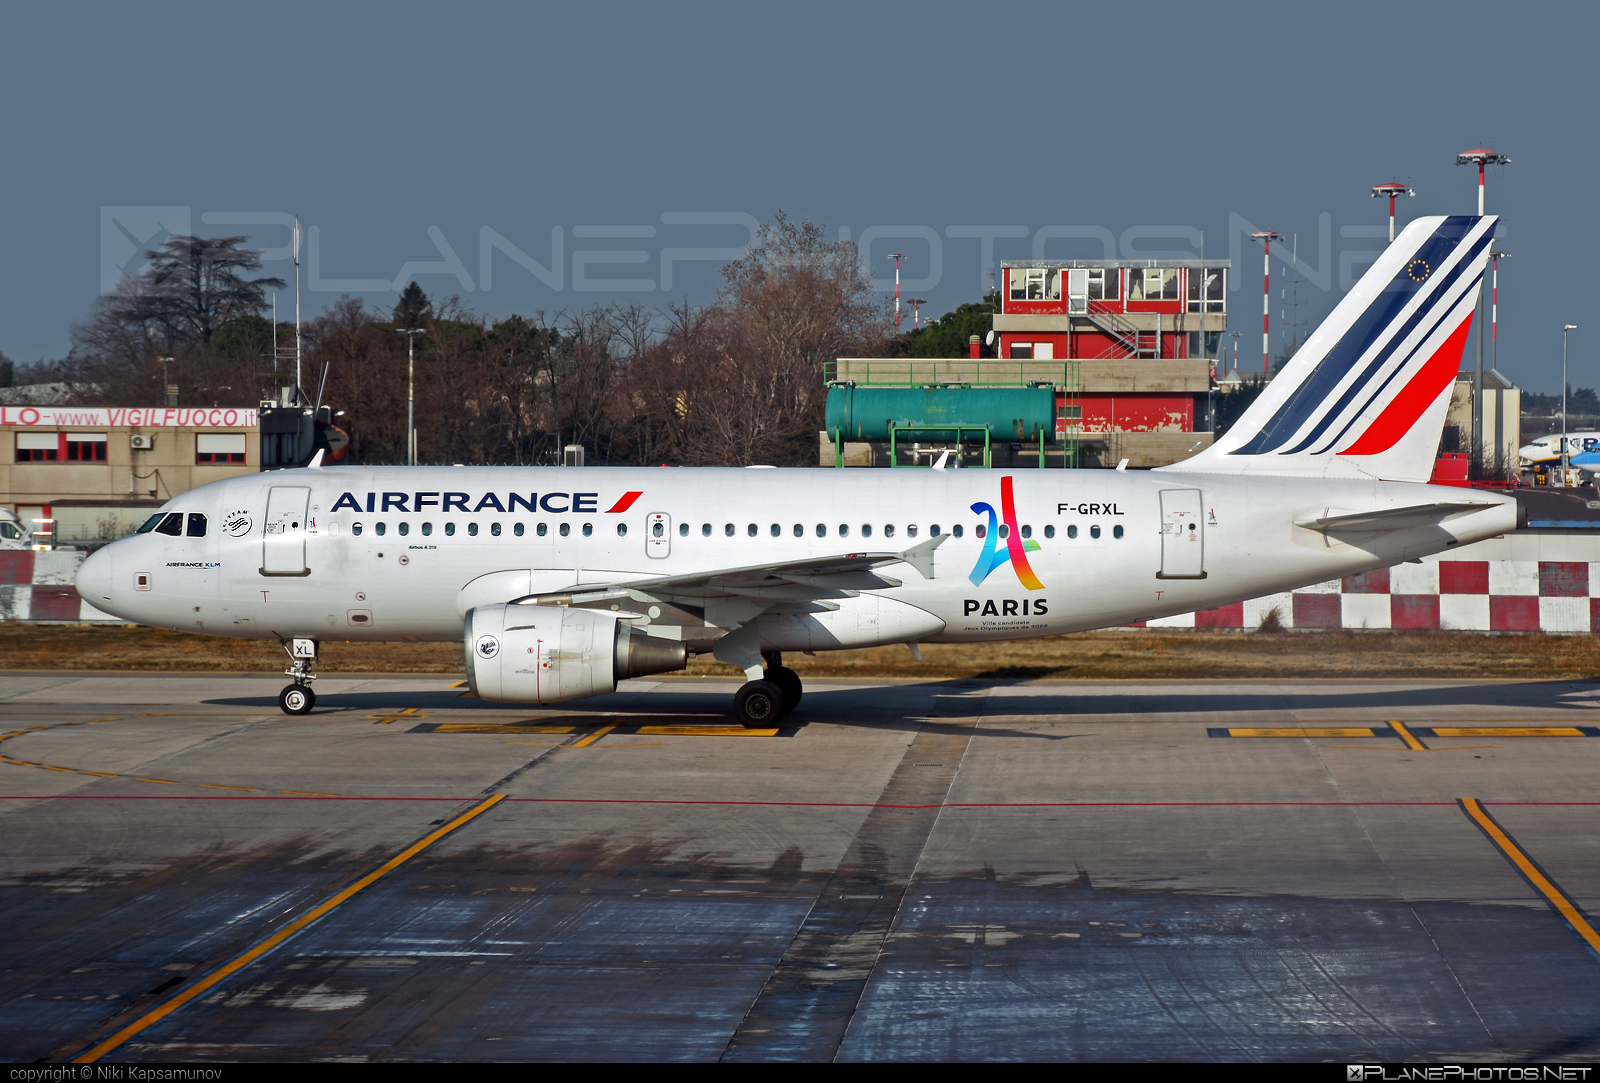 Airbus A319-111 - F-GRXL operated by Air France #a319 #a320family #airbus #airbus319 #airfrance